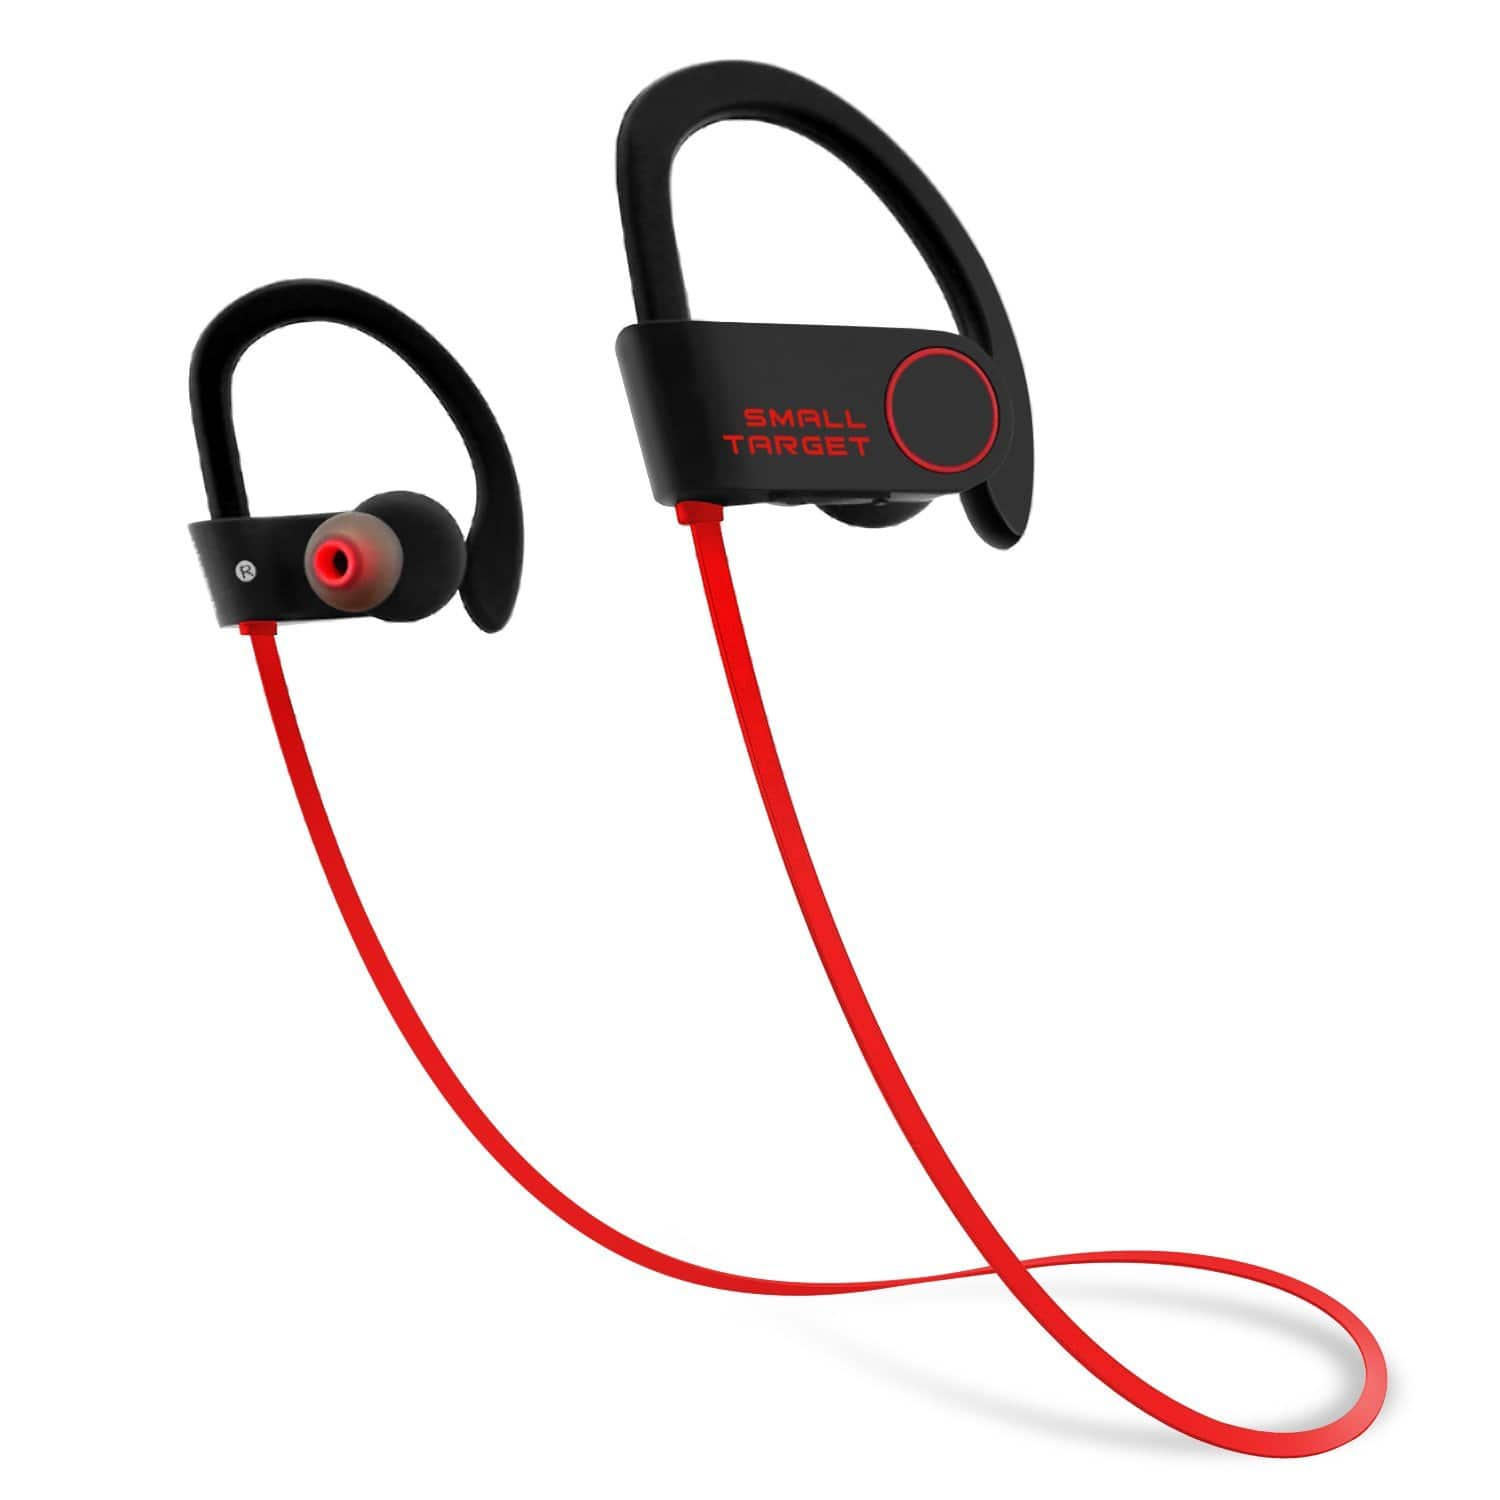 IPX7 Waterproof Stable Fit In Ear Earbuds Noise Isolating Bluetooth Headphones at $11.96 AC+FS With Prime